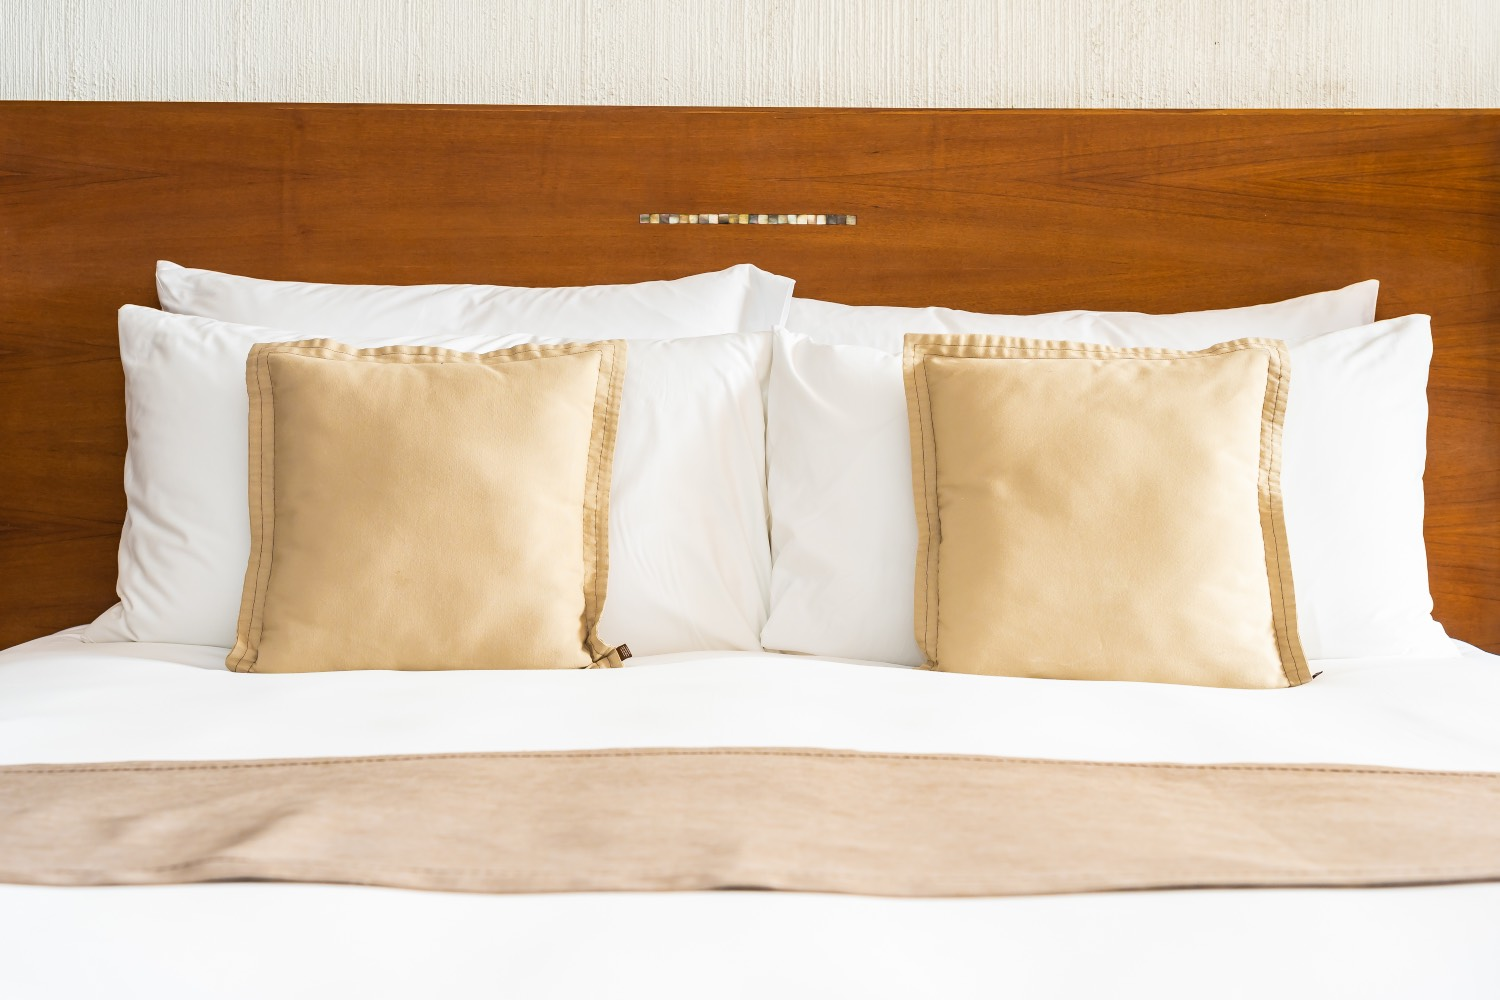 How to get a bed that rivals hotel beds in 6 simple ways!